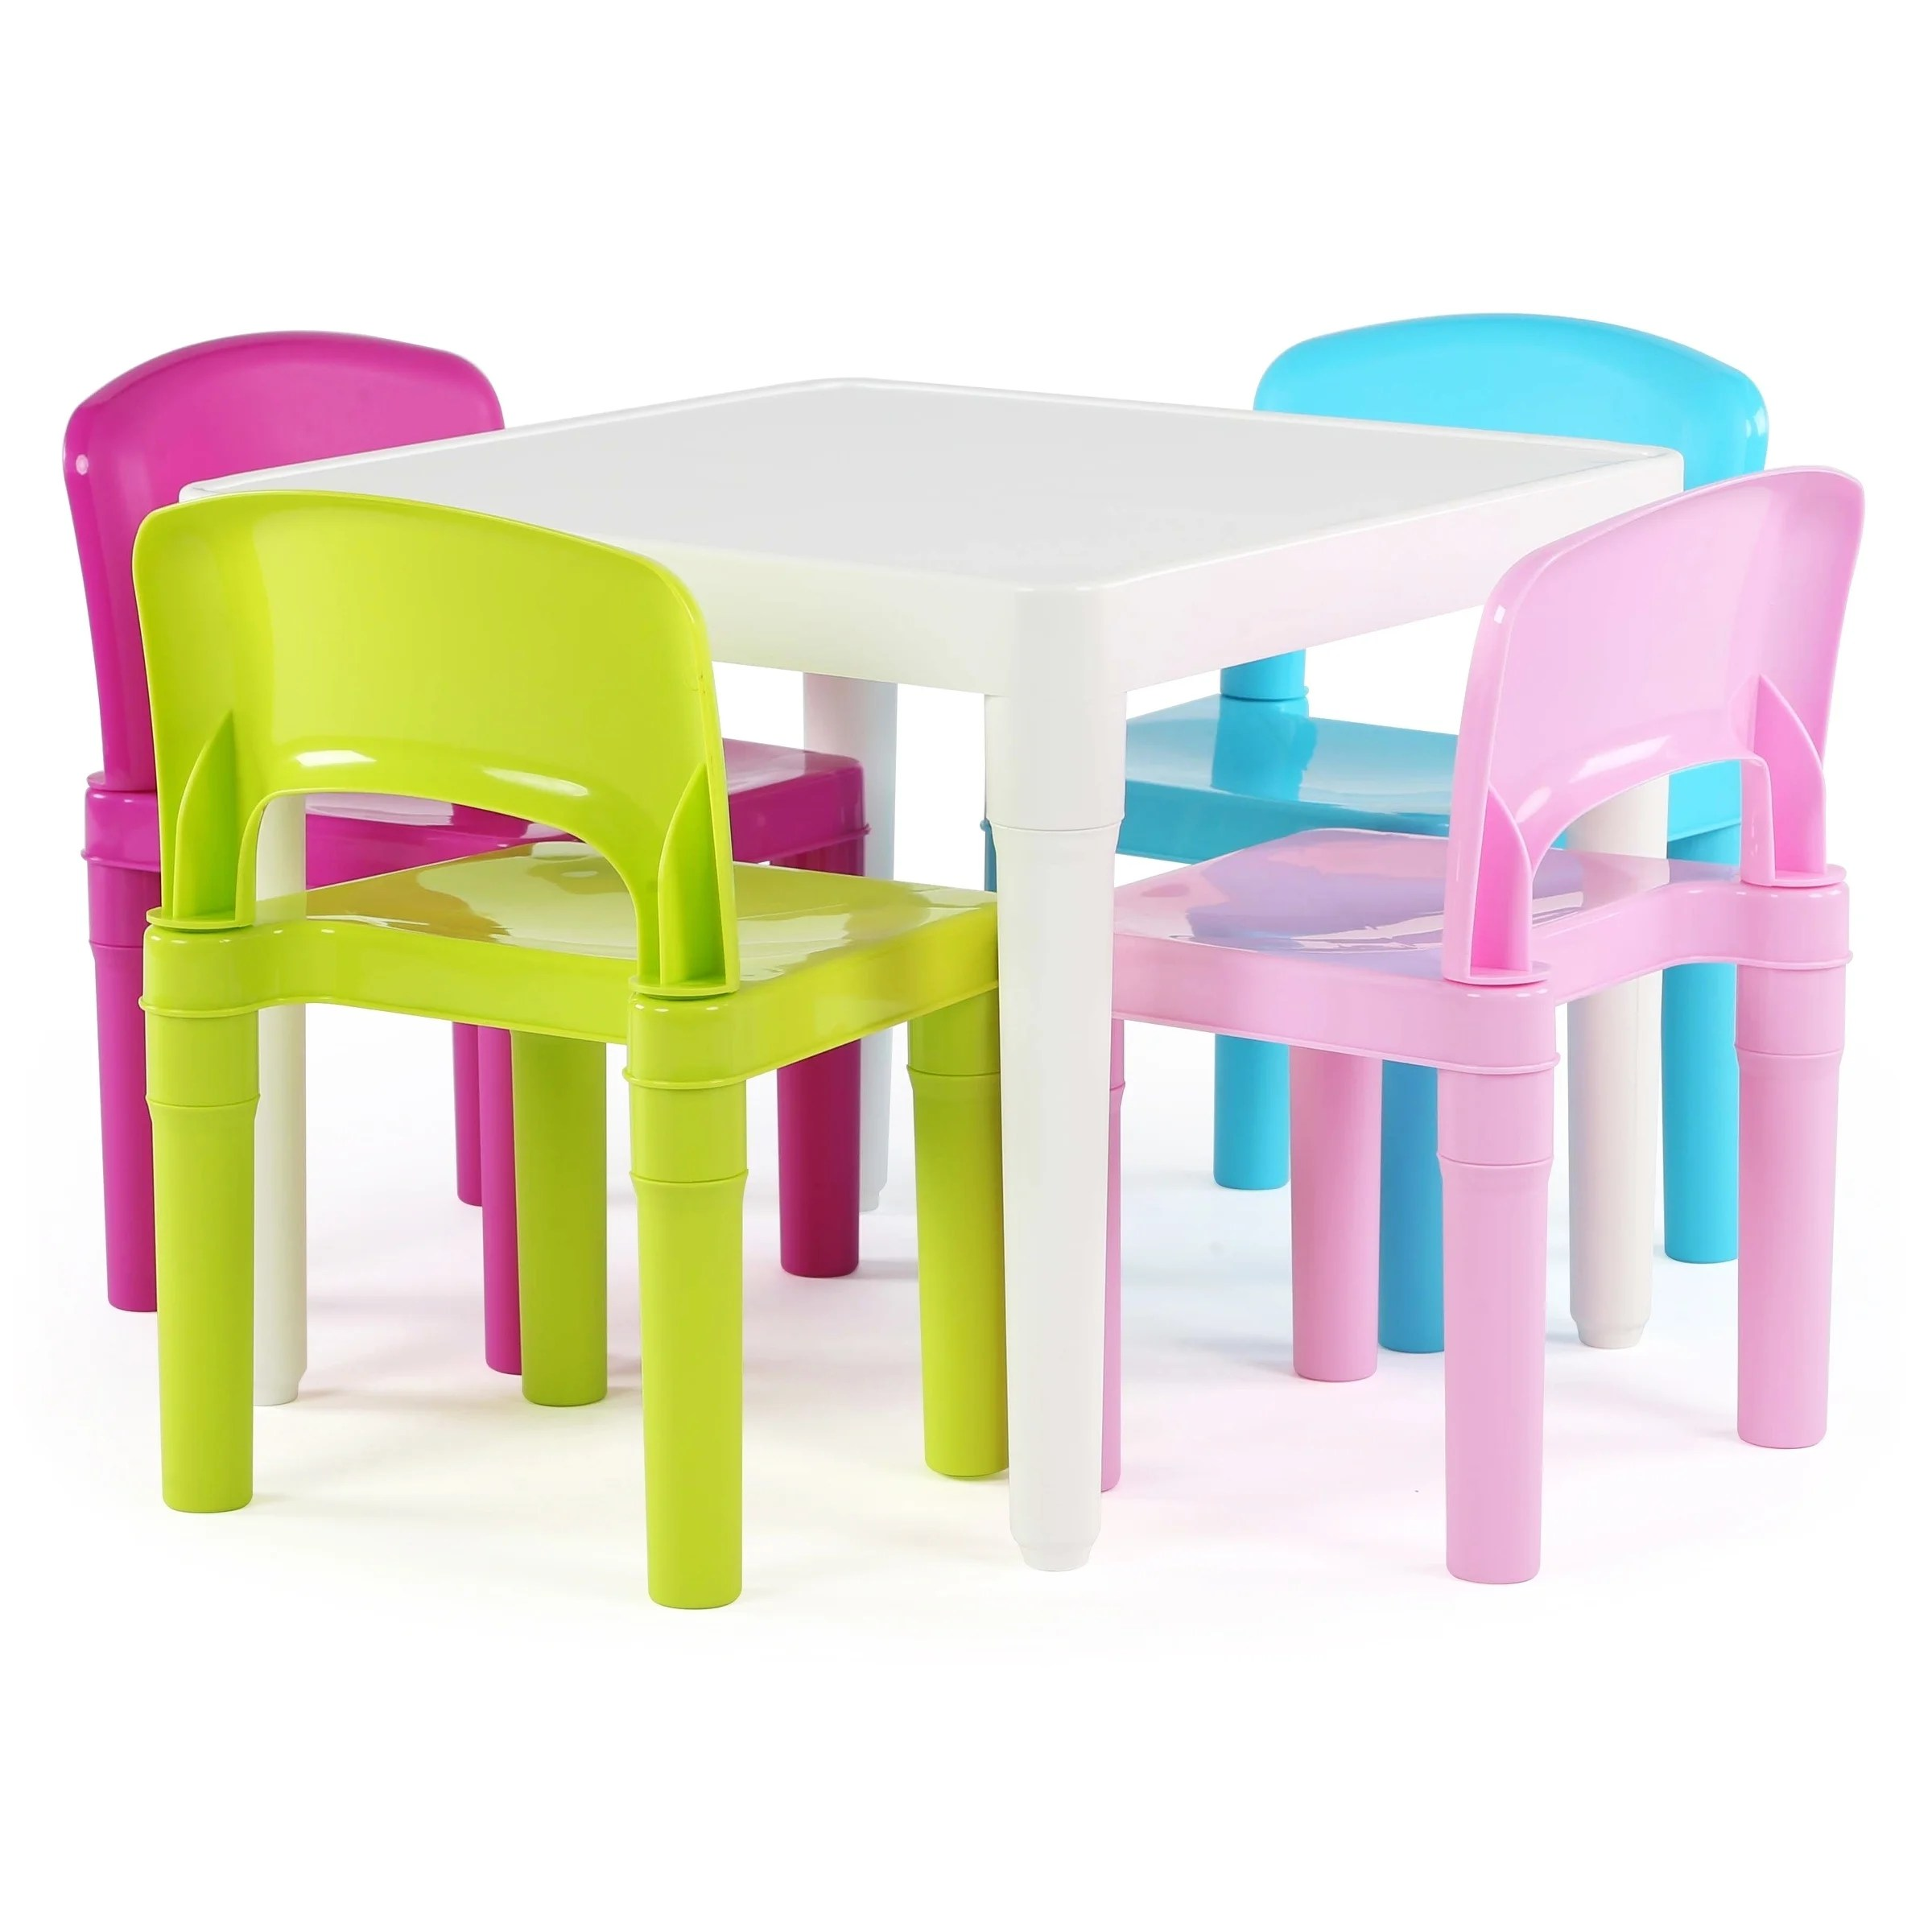 Plastic Kids Chairs Playtime Collection Kids Plastic Table 4 Chairs White Bright Colors White